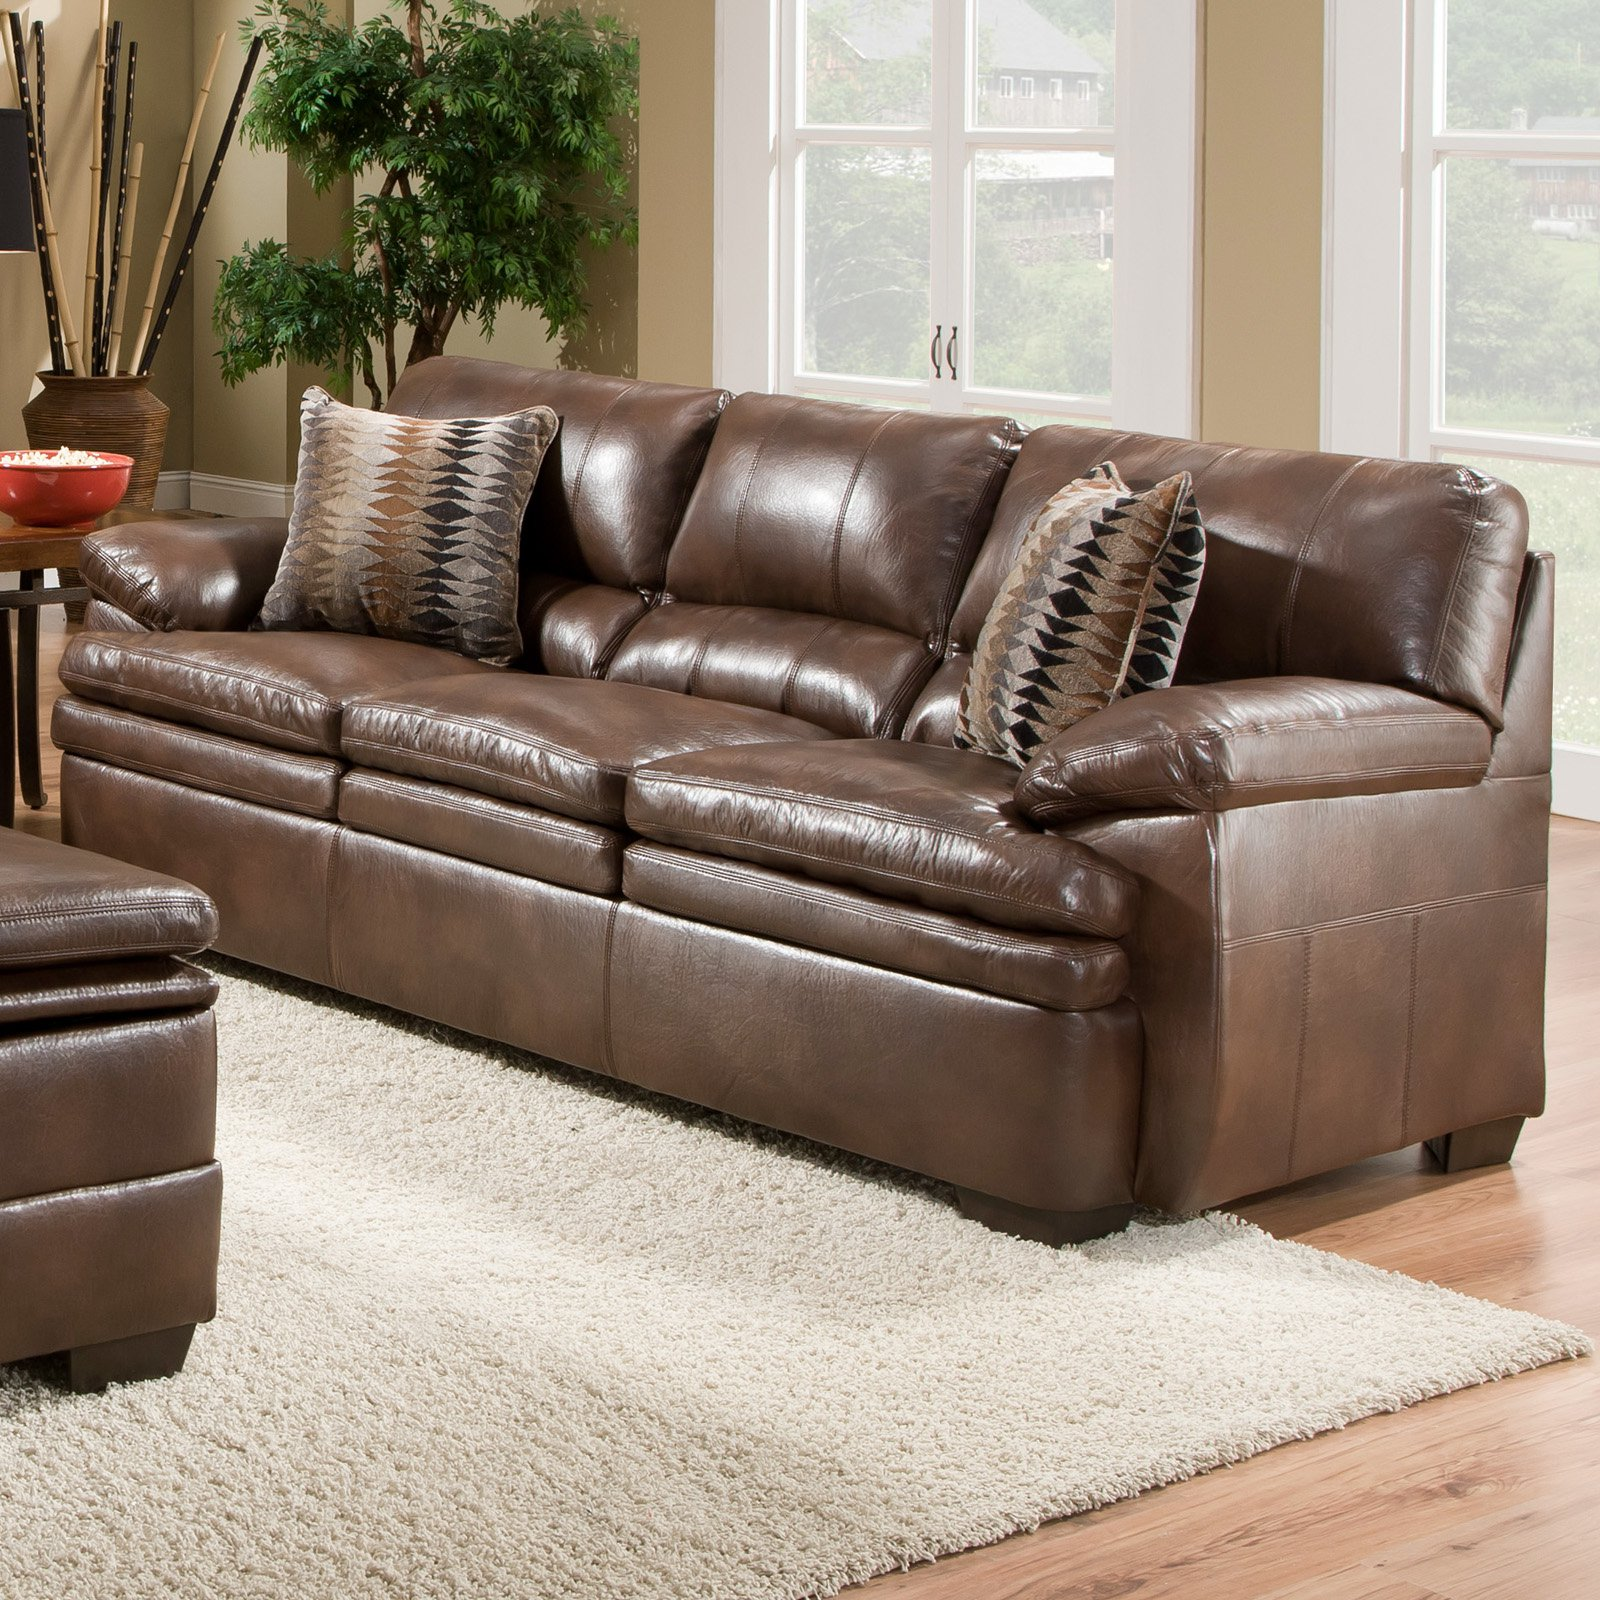 Merveilleux Simmons Upholstery Editor Bonded Leather Sofa   Brown